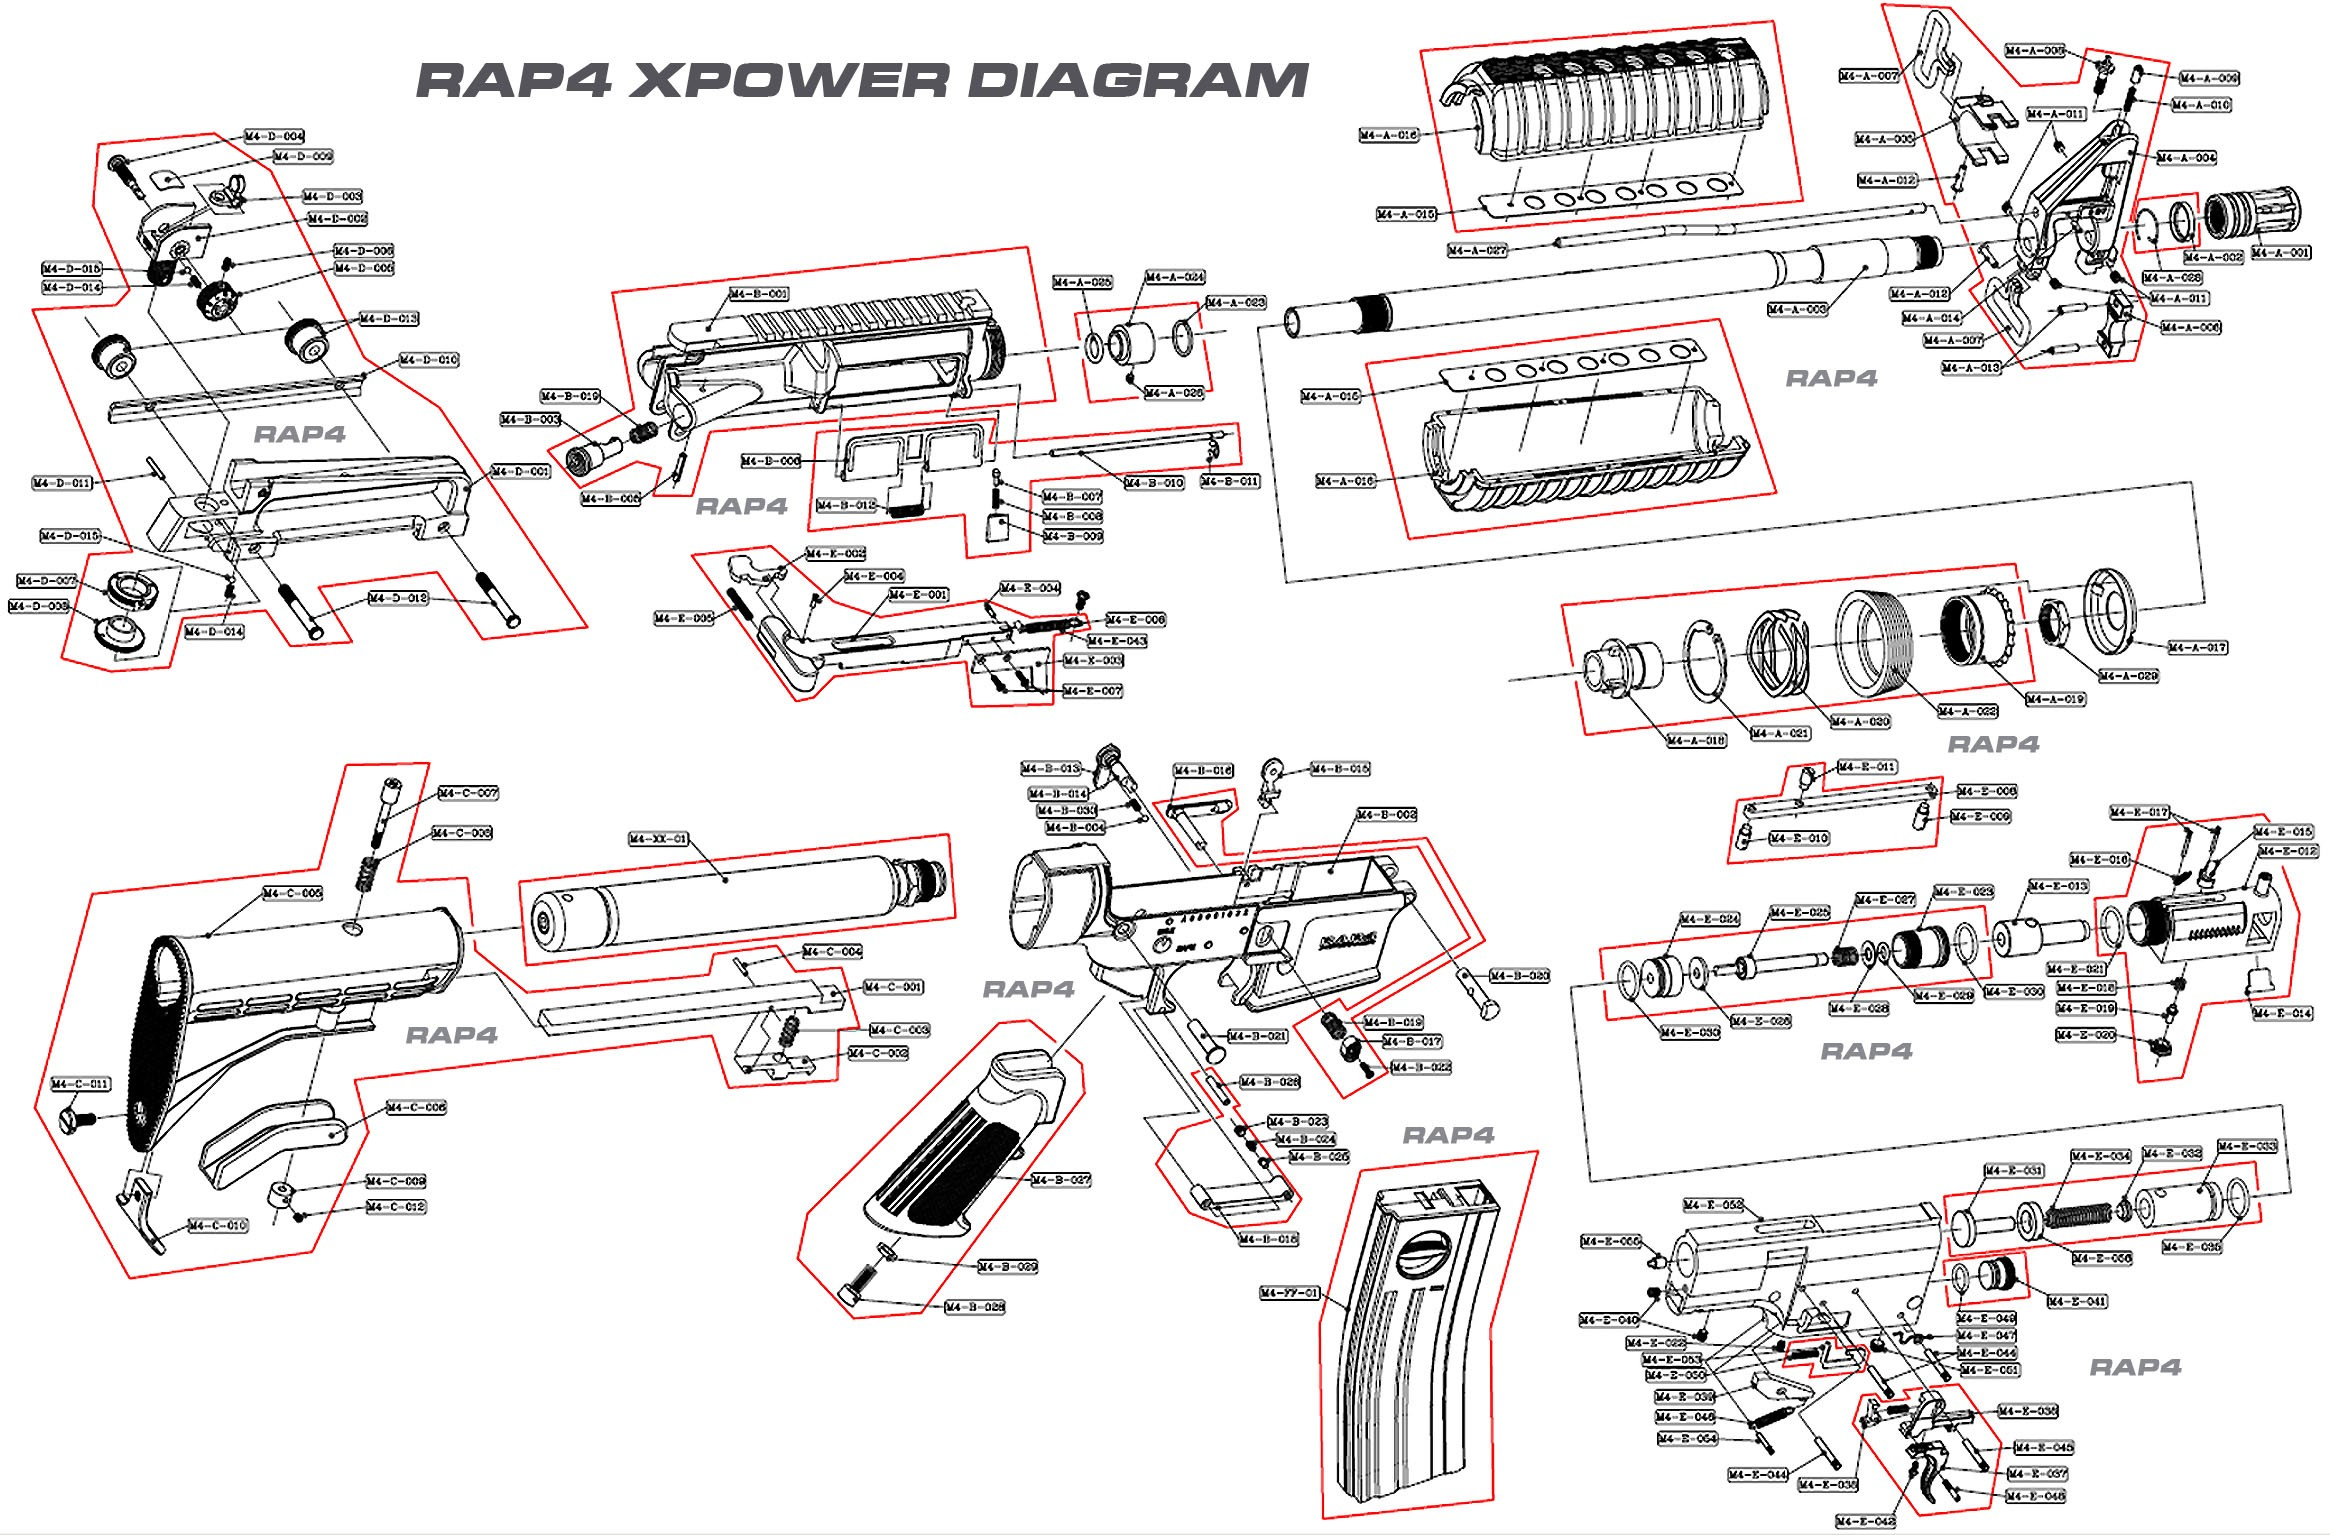 Diagram Of Car Parts M4 Carbine Schematic Military Pinterest Of Diagram Of Car Parts